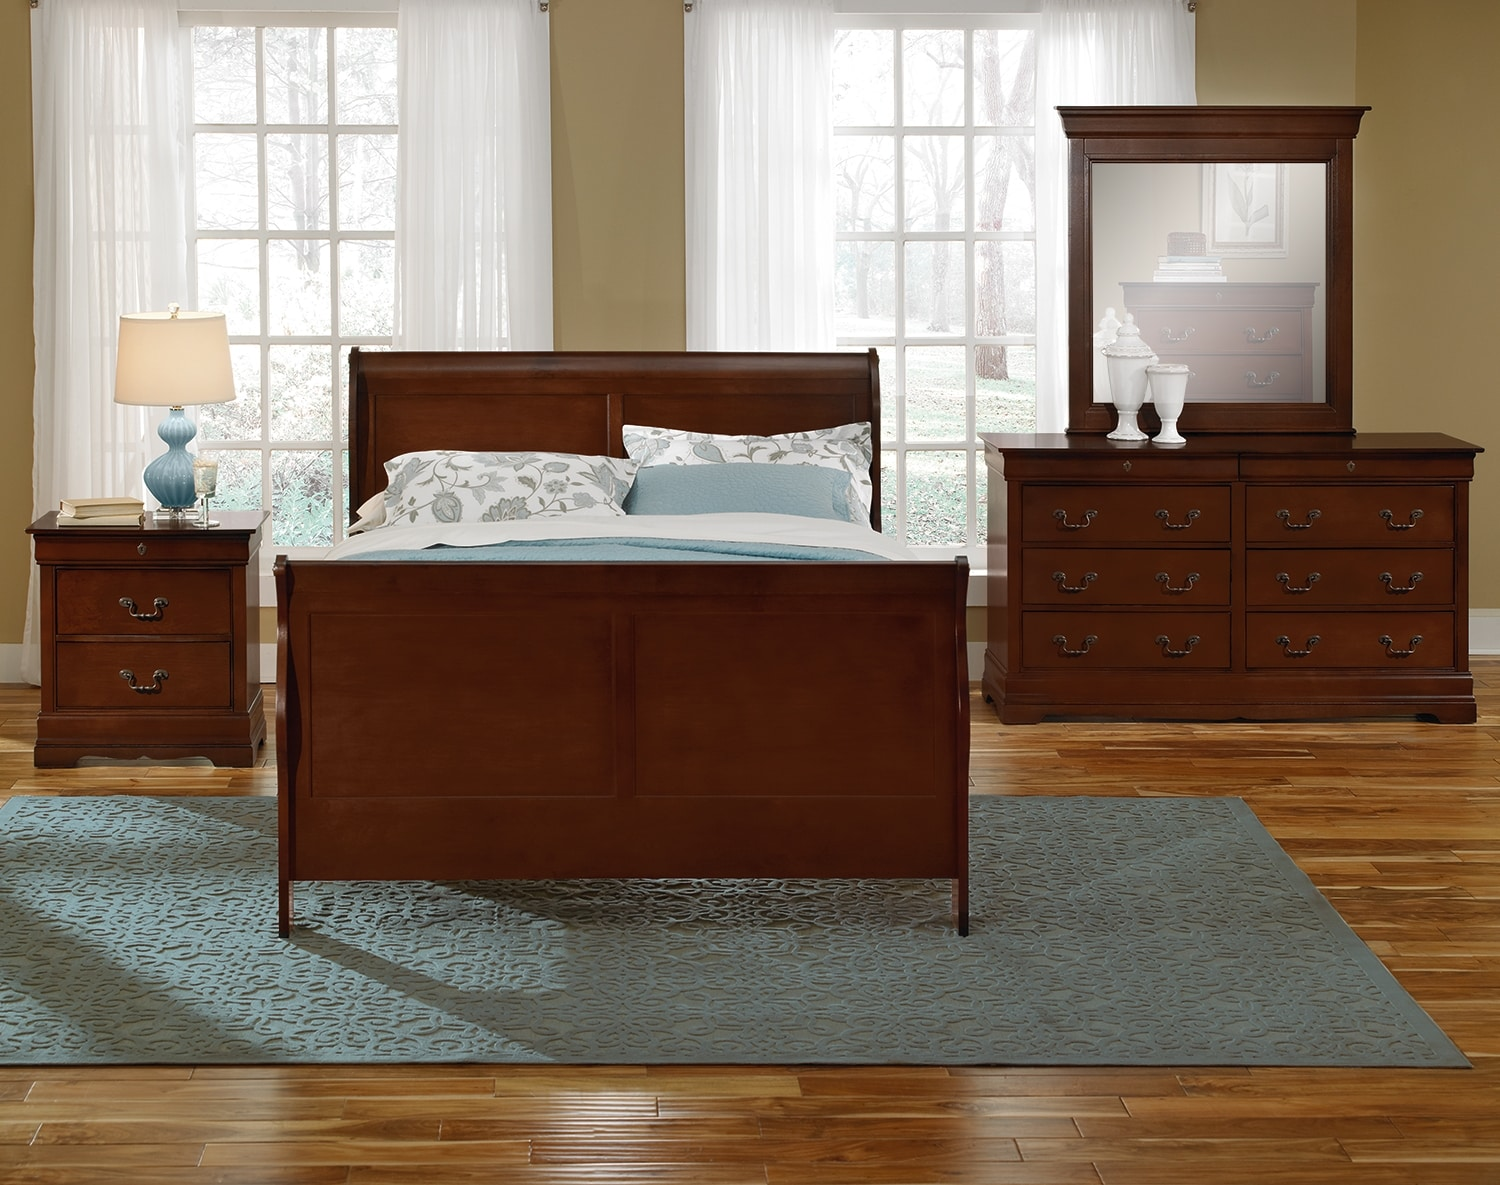 Kids Furniture - The Avignon II Cherry Collection - Twin Bed